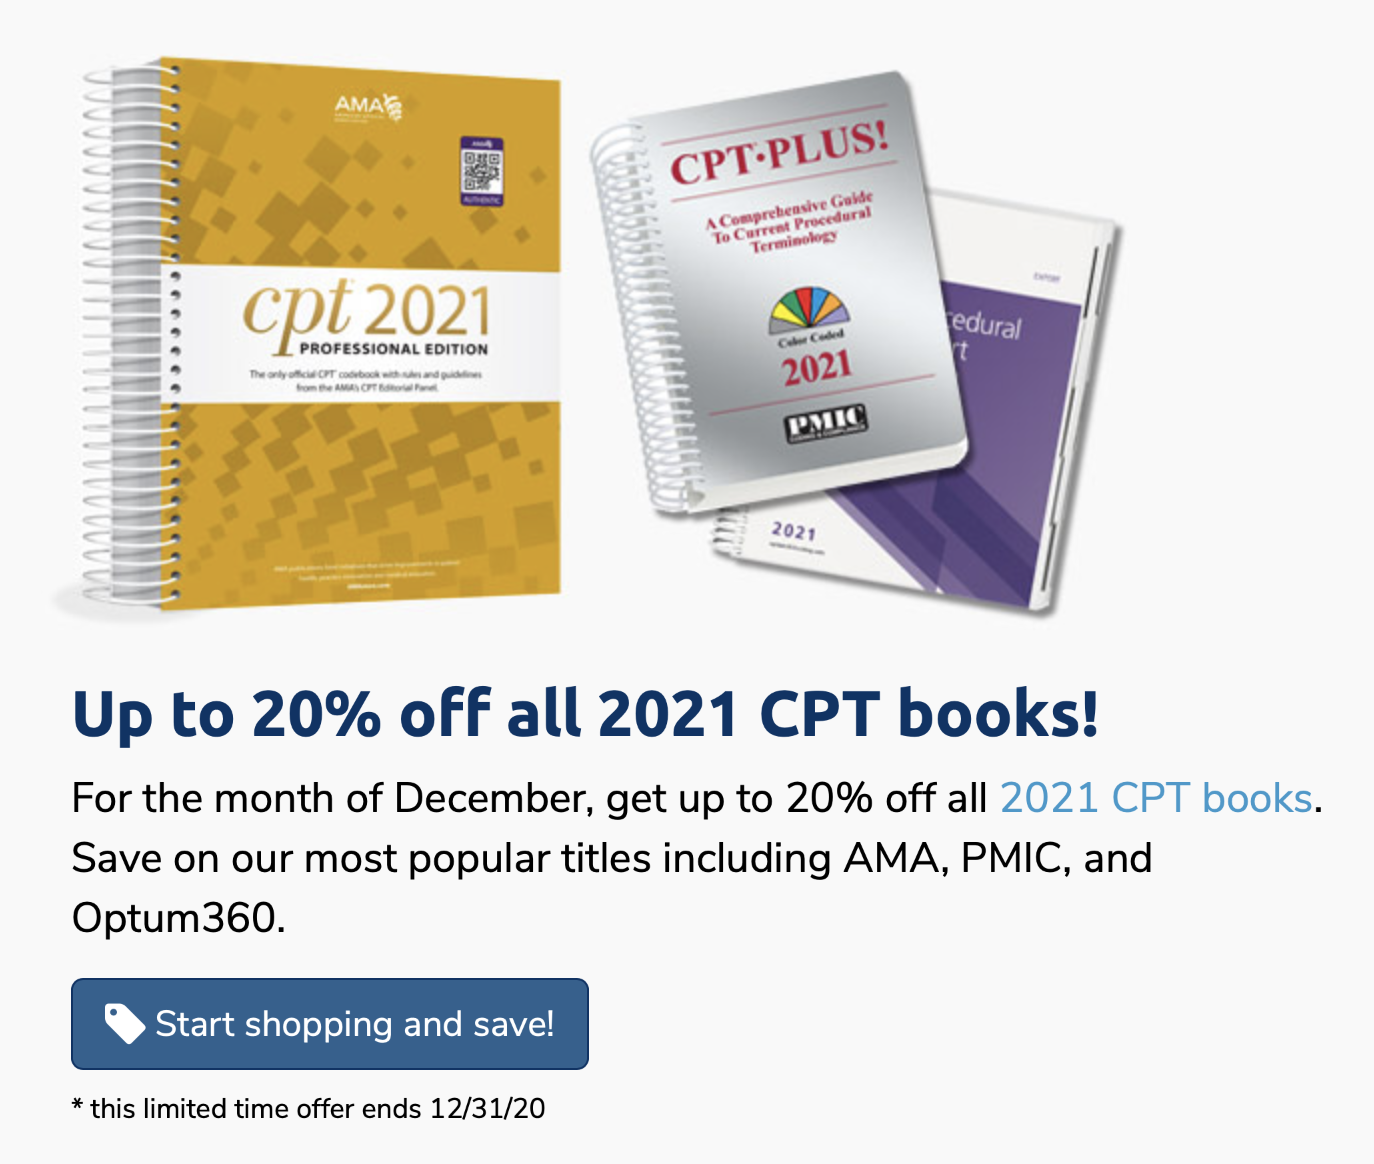 Up to 20% Off 2021 CPT Books